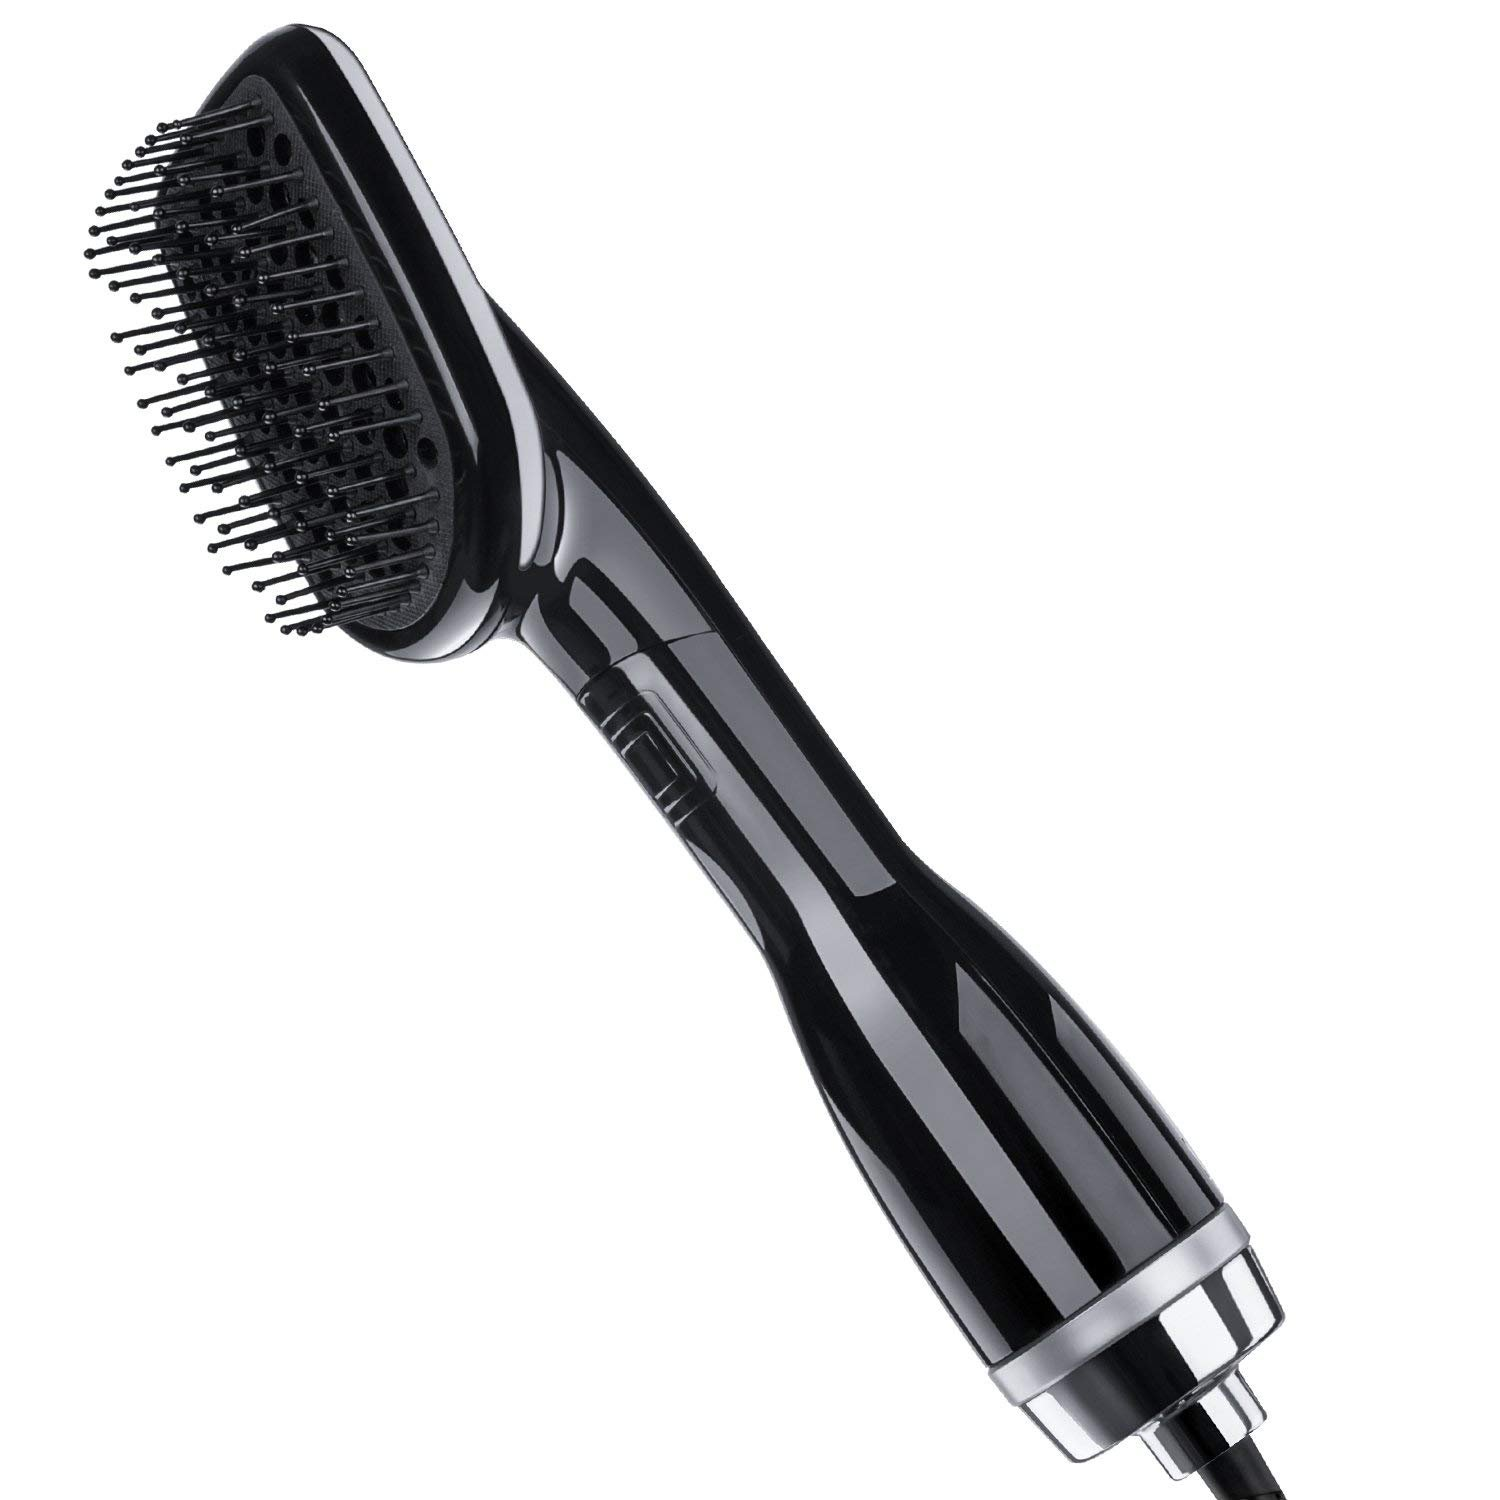 One-Step Hair Dryer & Styler, YaFex Ionic Hot Air Paddle Brush - Blow Dryer Brush For All Hair Types - Powerful, Lightweight & Ergonomic Design